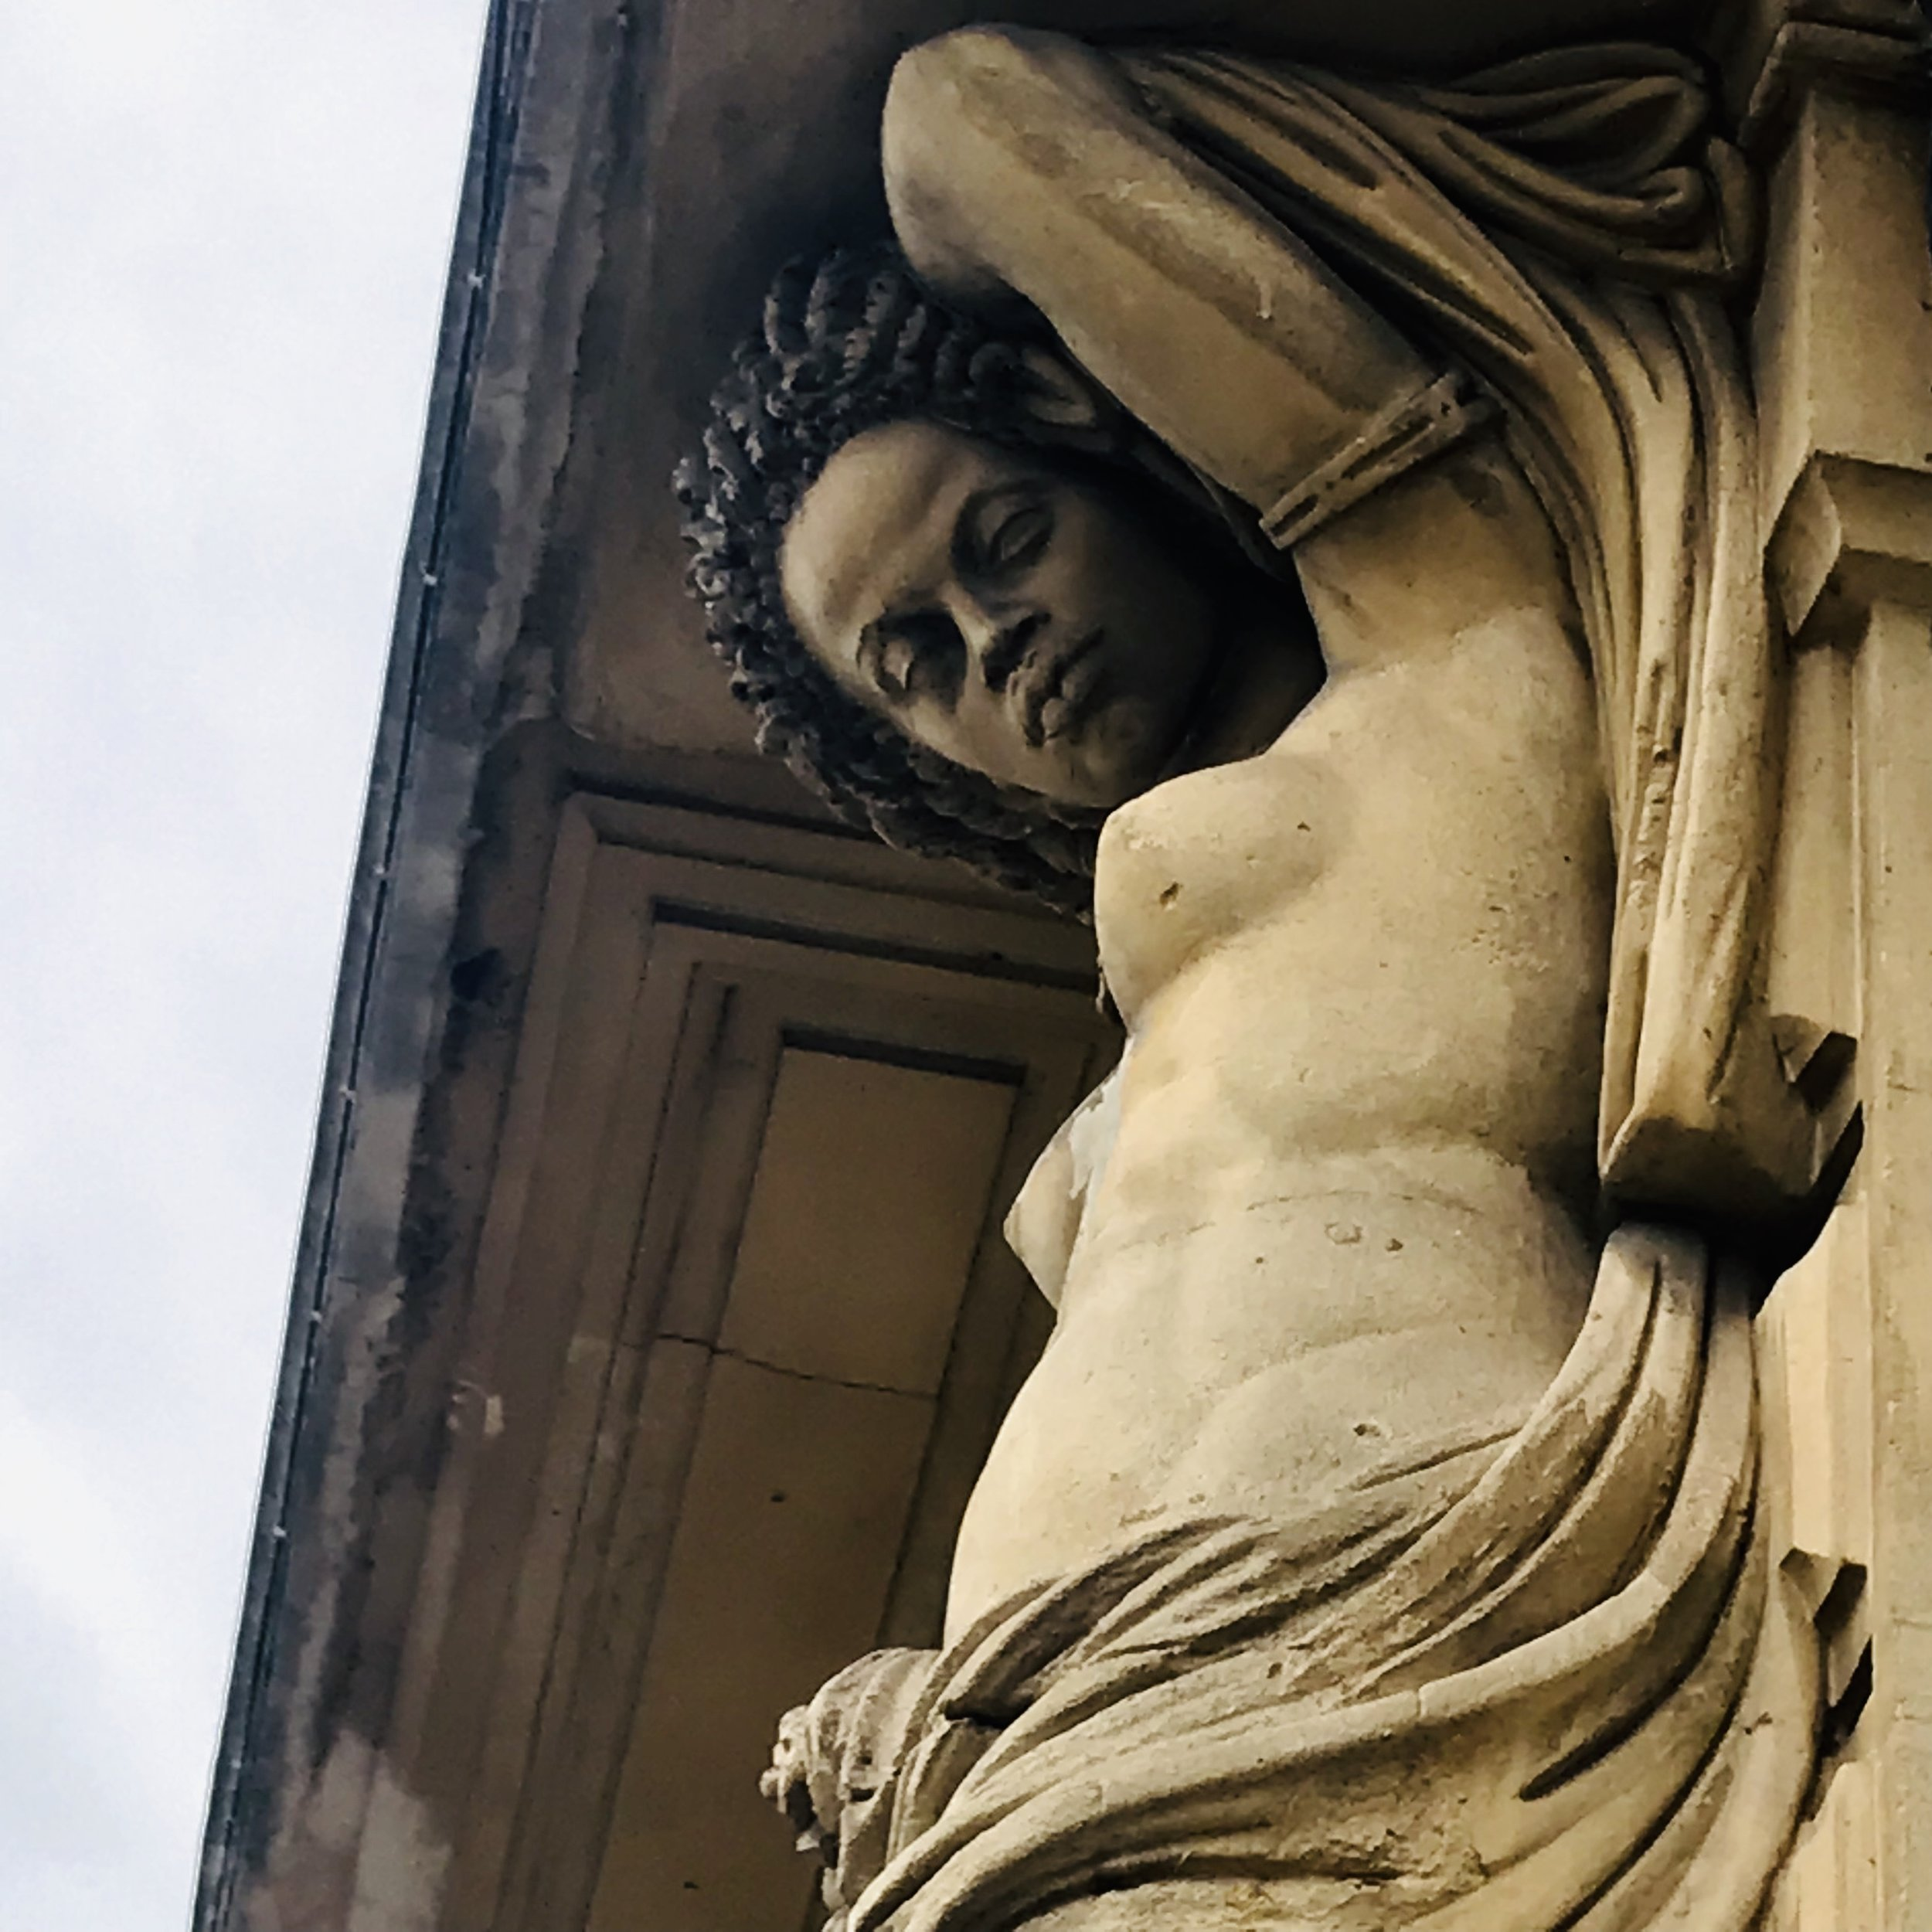 Beautiful, realistic, and surprising statues adorning an old building (Sete)